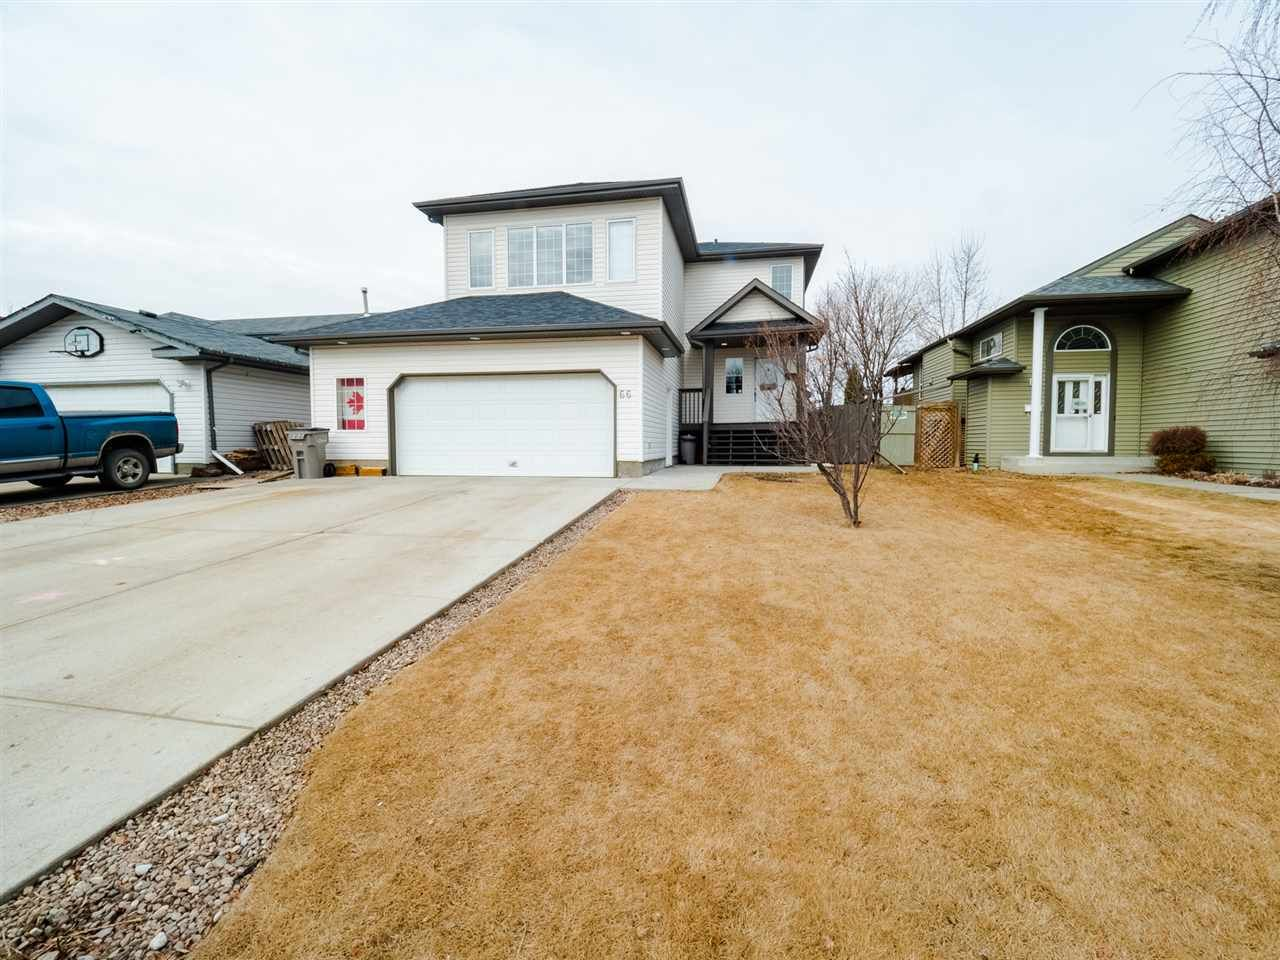 Main Photo: 66 HERITAGE Crescent: Stony Plain House for sale : MLS®# E4236241